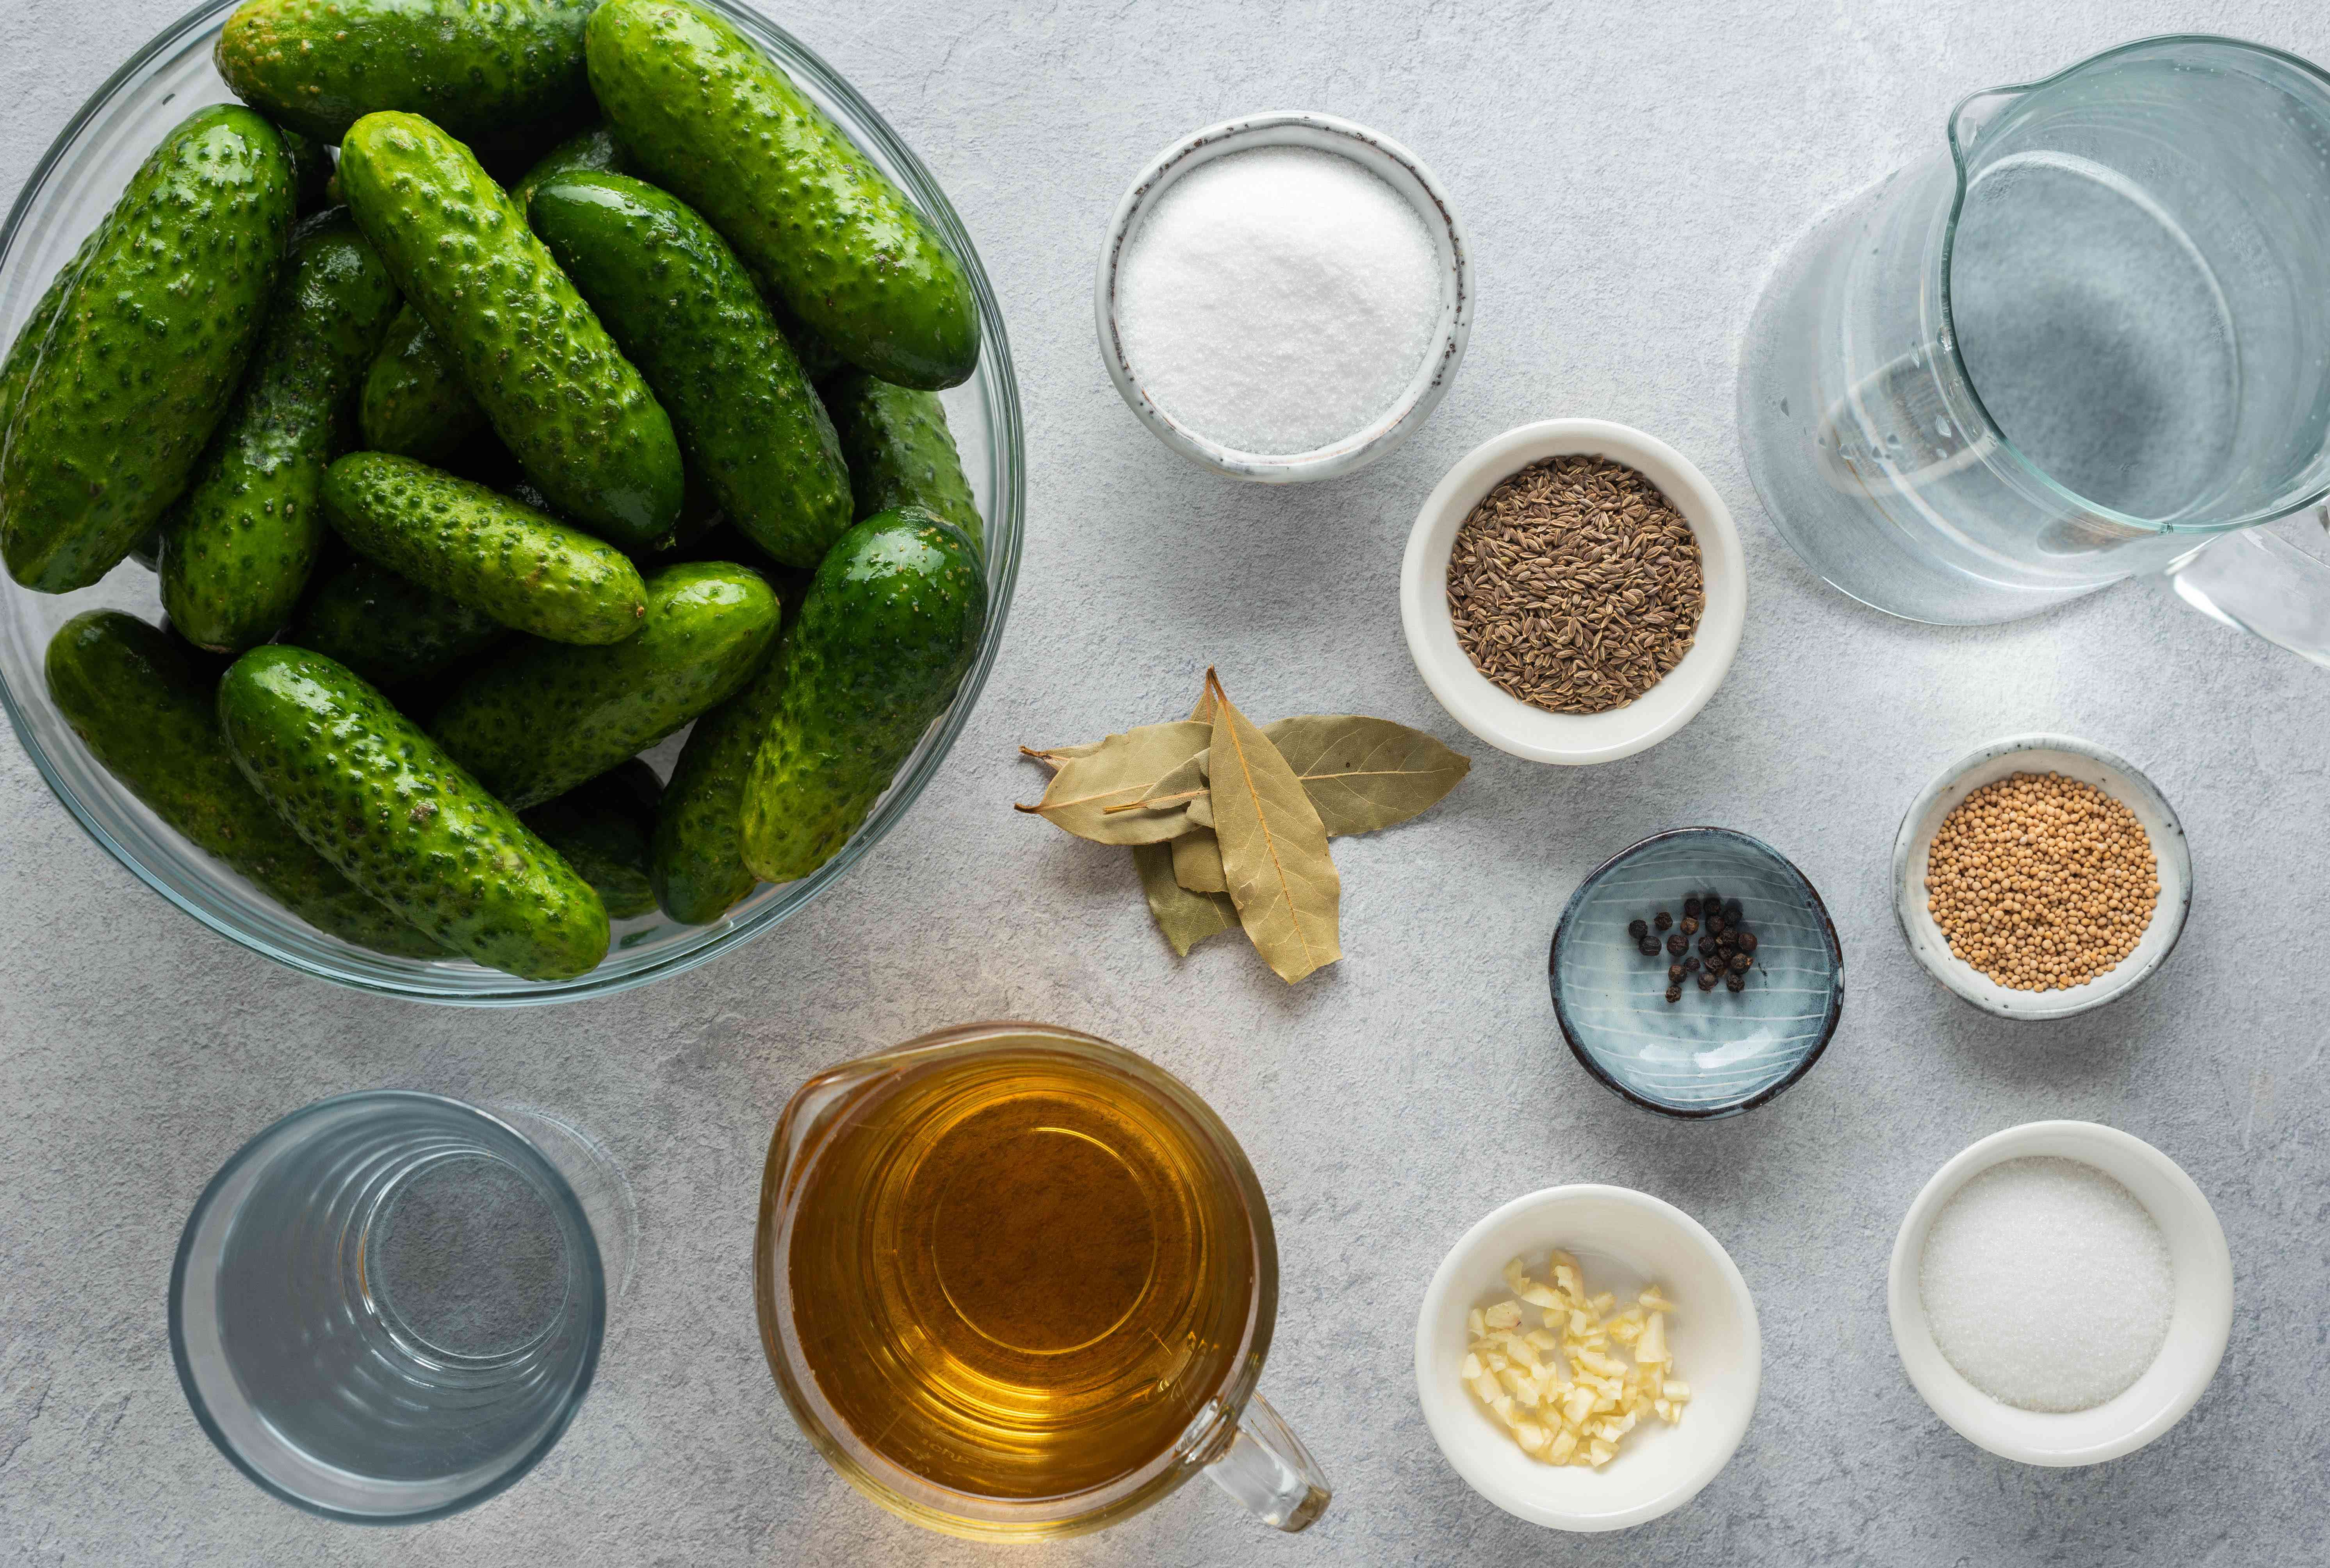 Canned Homemade Dill Pickle Slices ingredients